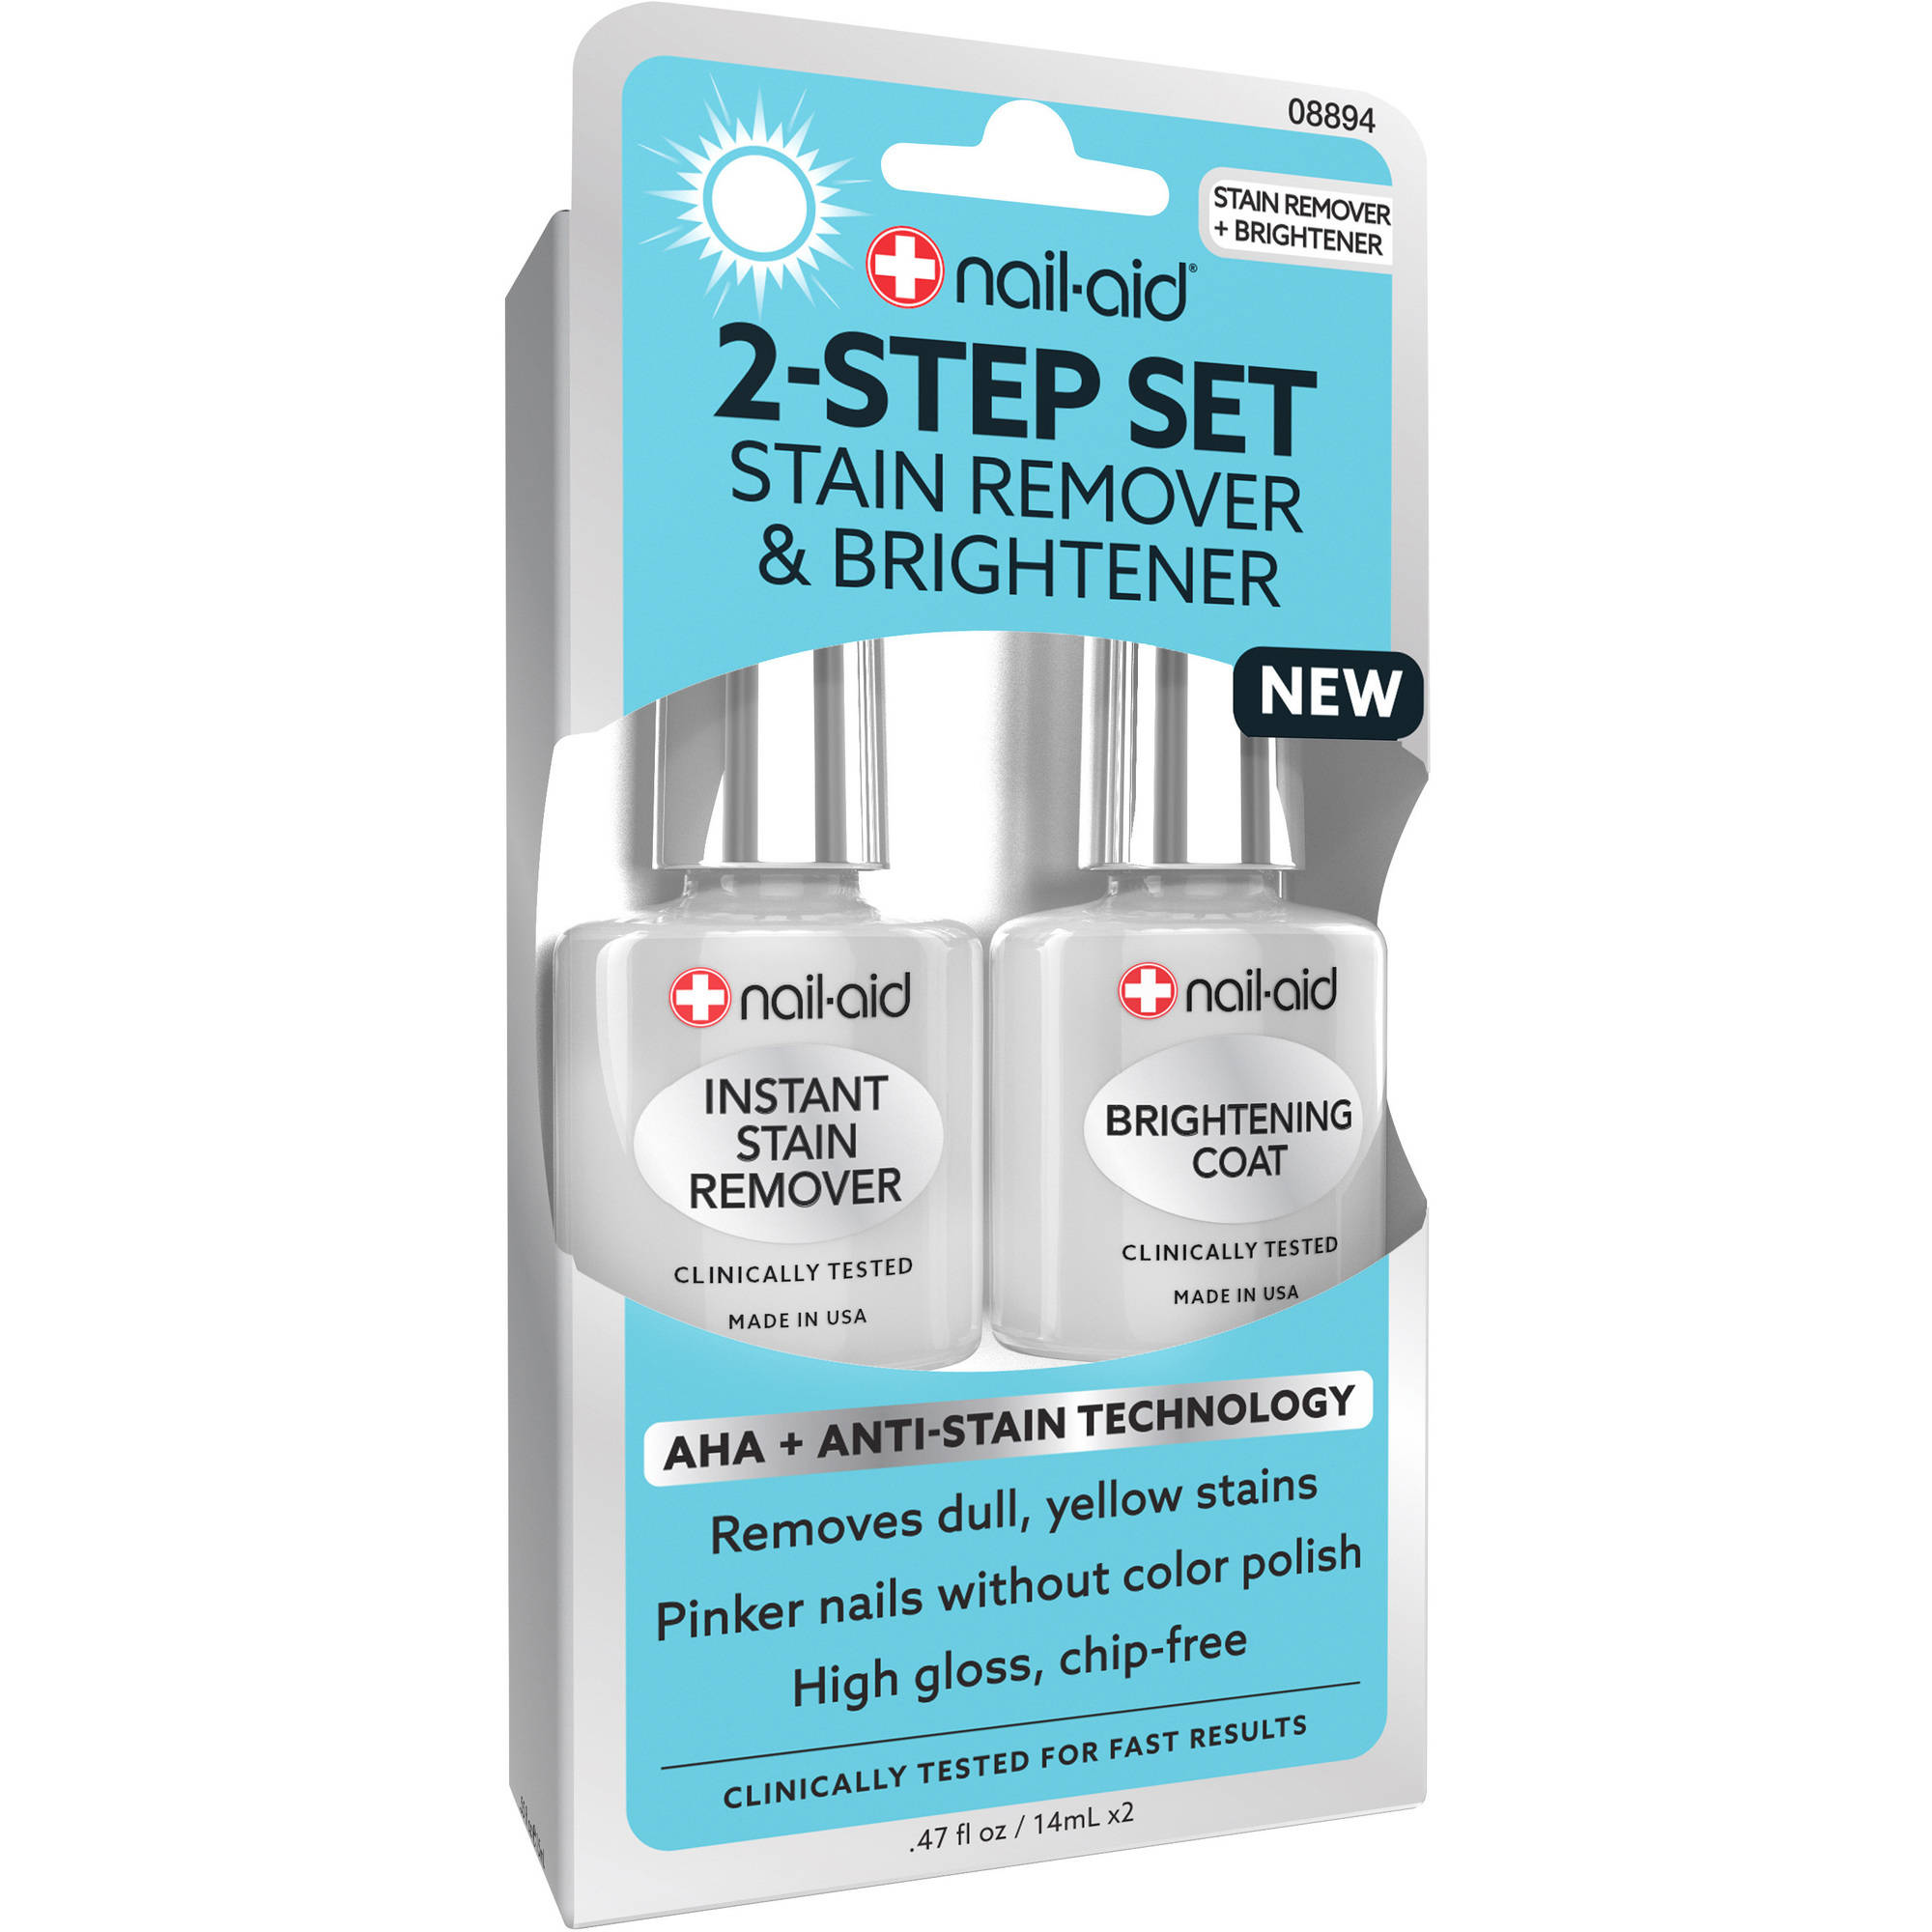 Generic Nail - aid 2 - step Set Stain Remover & Brightener Nail Treatment,